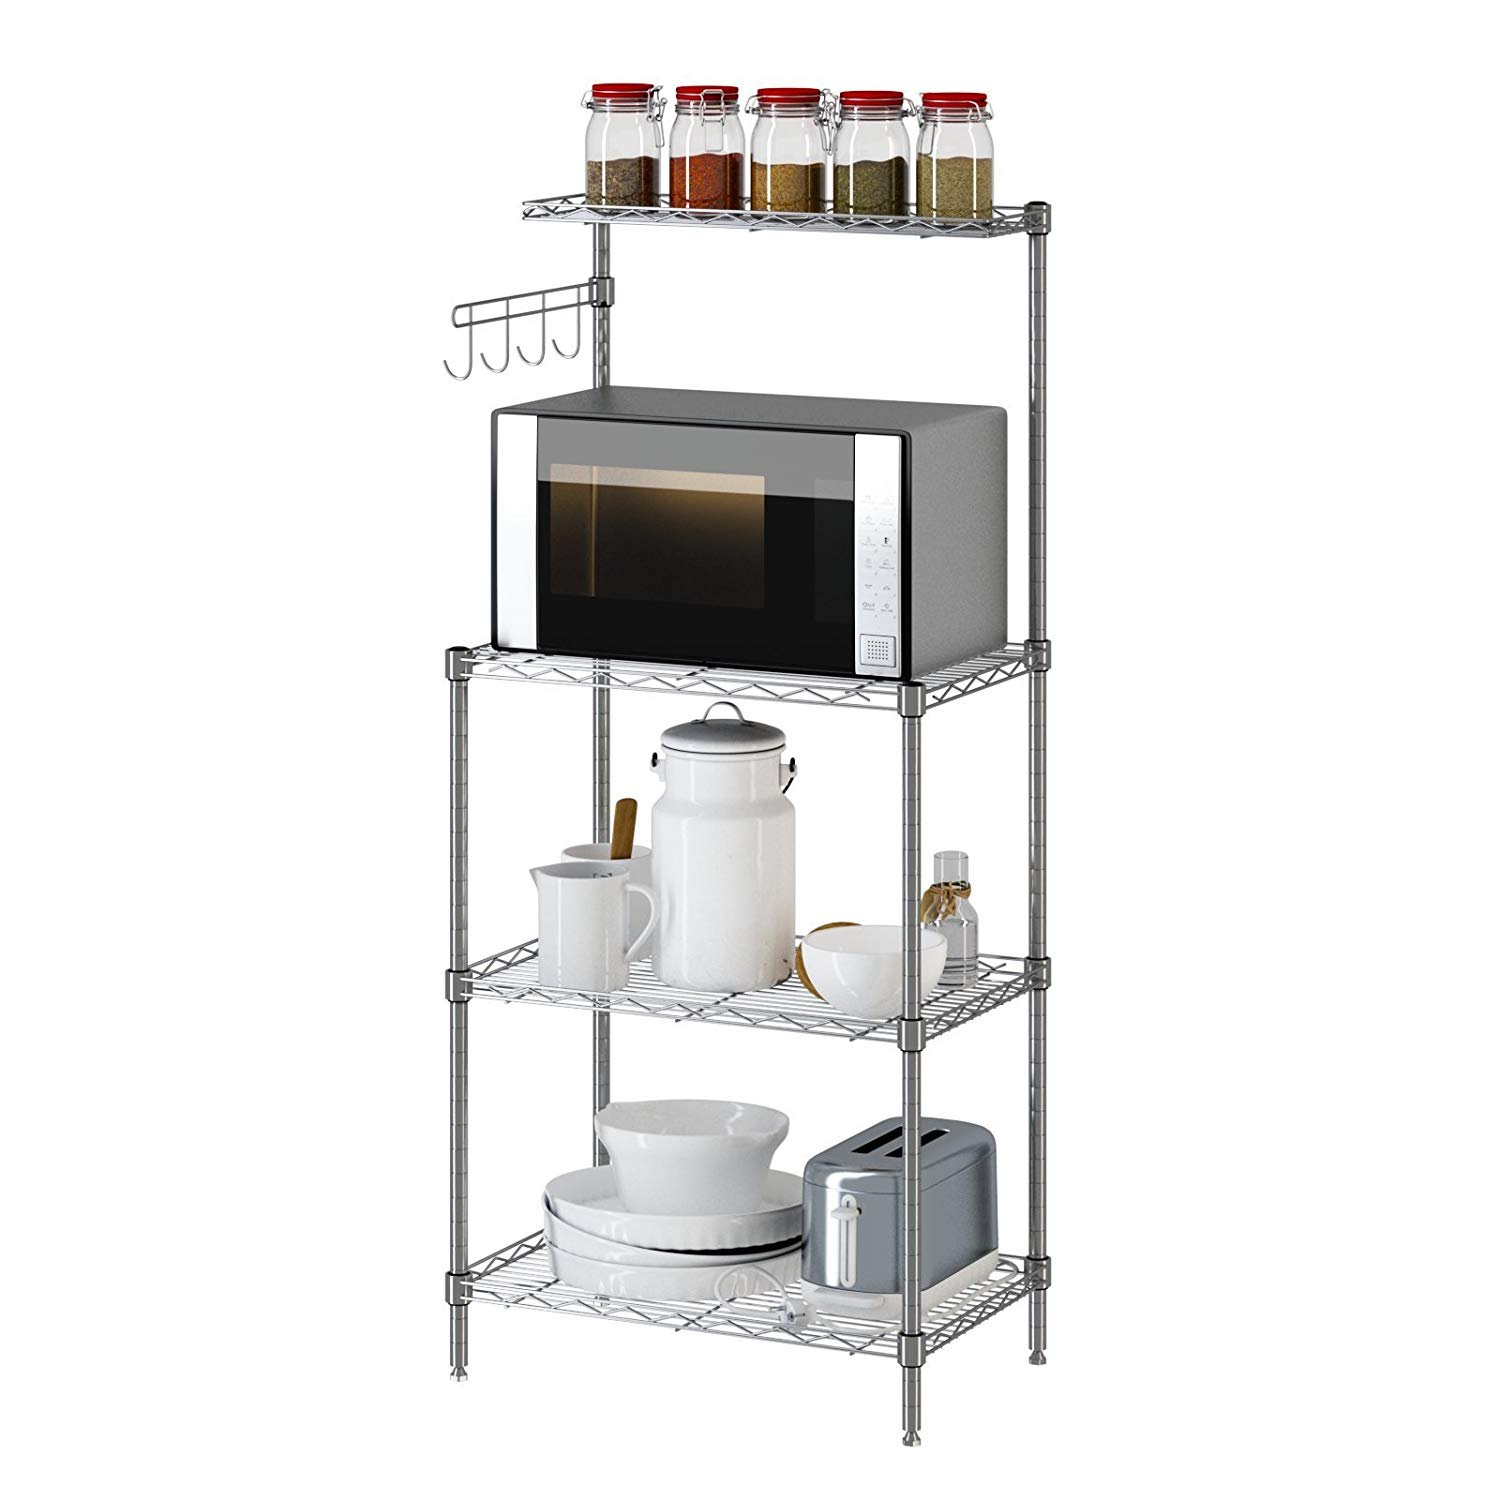 Yontree 3 Tier Microwave Stand Storage Rack,Baker's Rack,Kitchen Wire Shelving Silver Grey 13.8x21.7x47.2 Inches